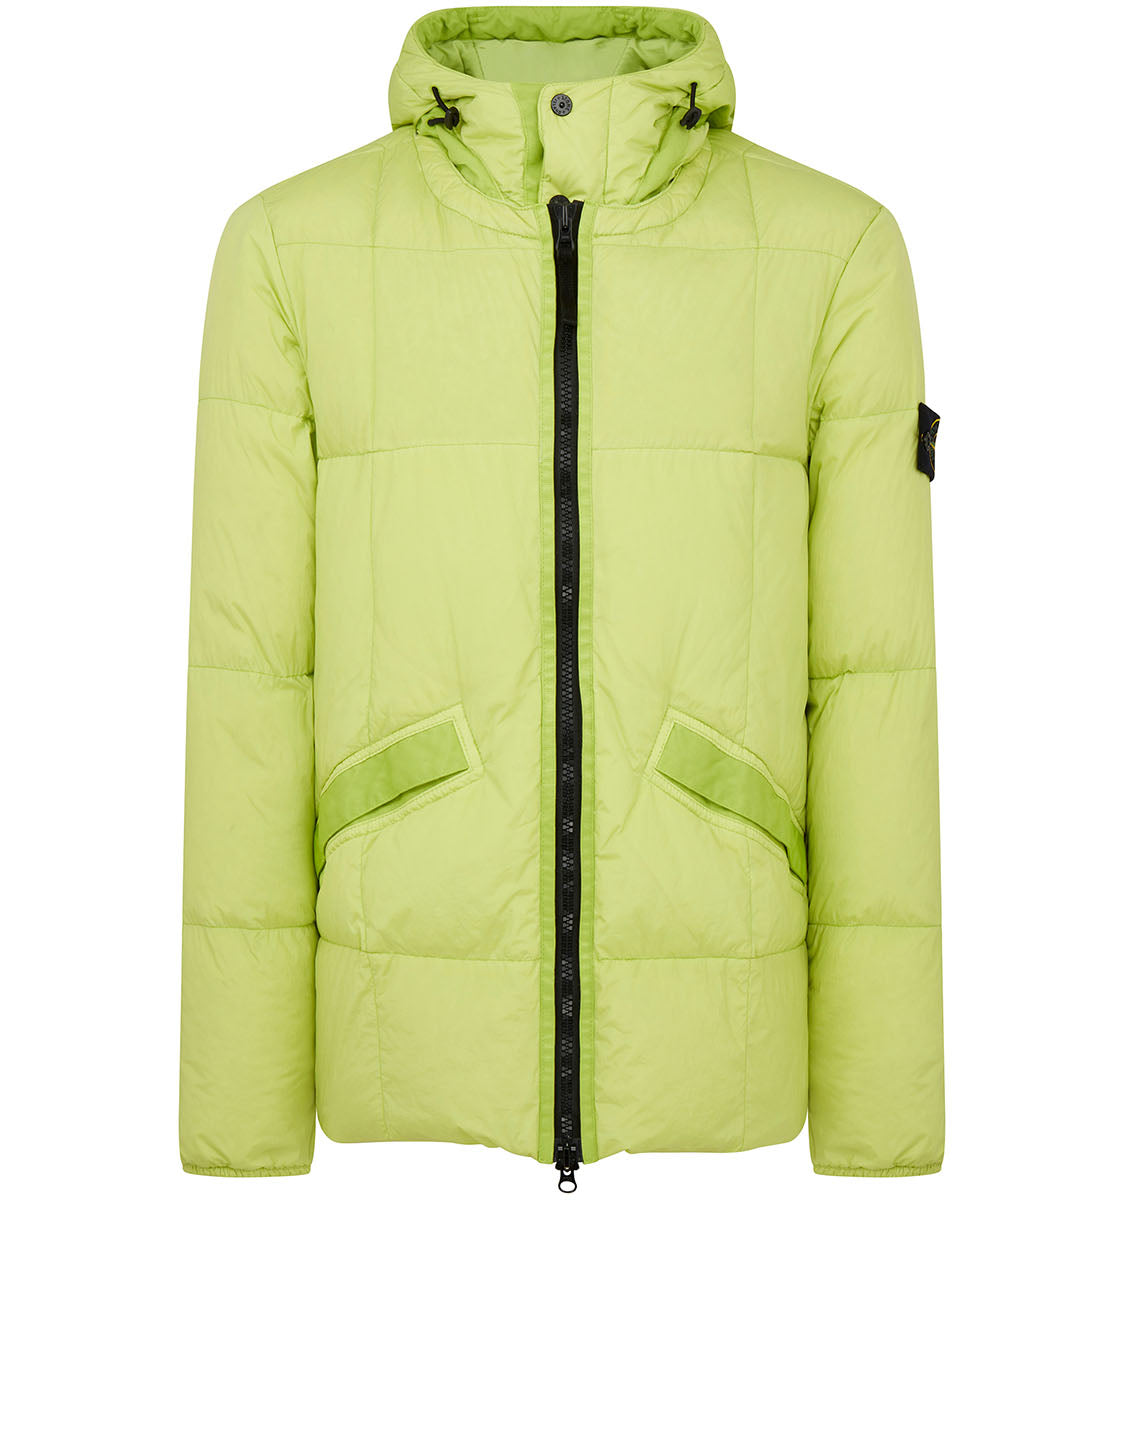 40223 GARMENT DYED CRINKLE REPS NY DOWN Jacket in Pistachio